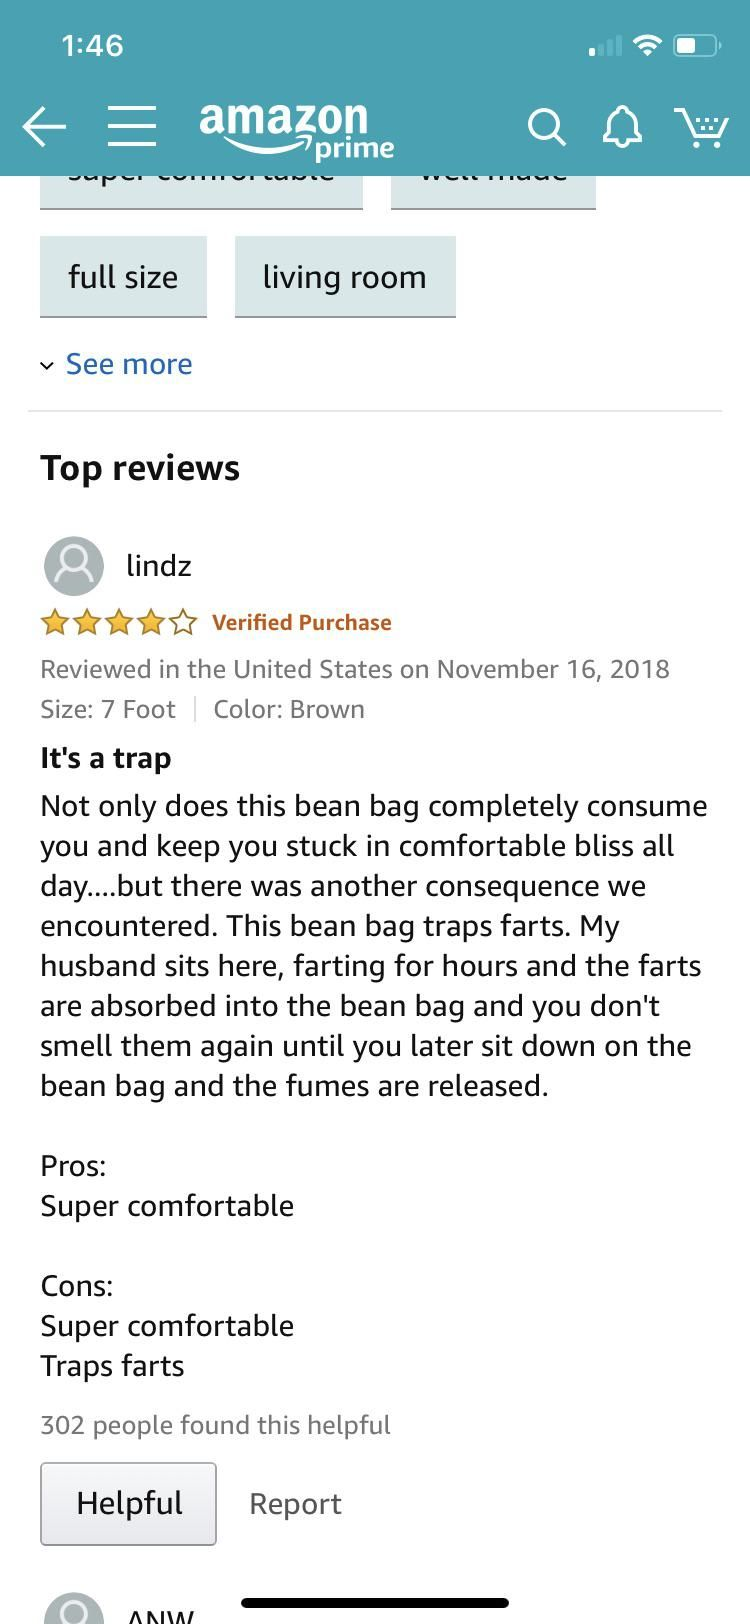 Saw this while looking at reviews of 7ft bean bag chairs and couldn't stop laughing